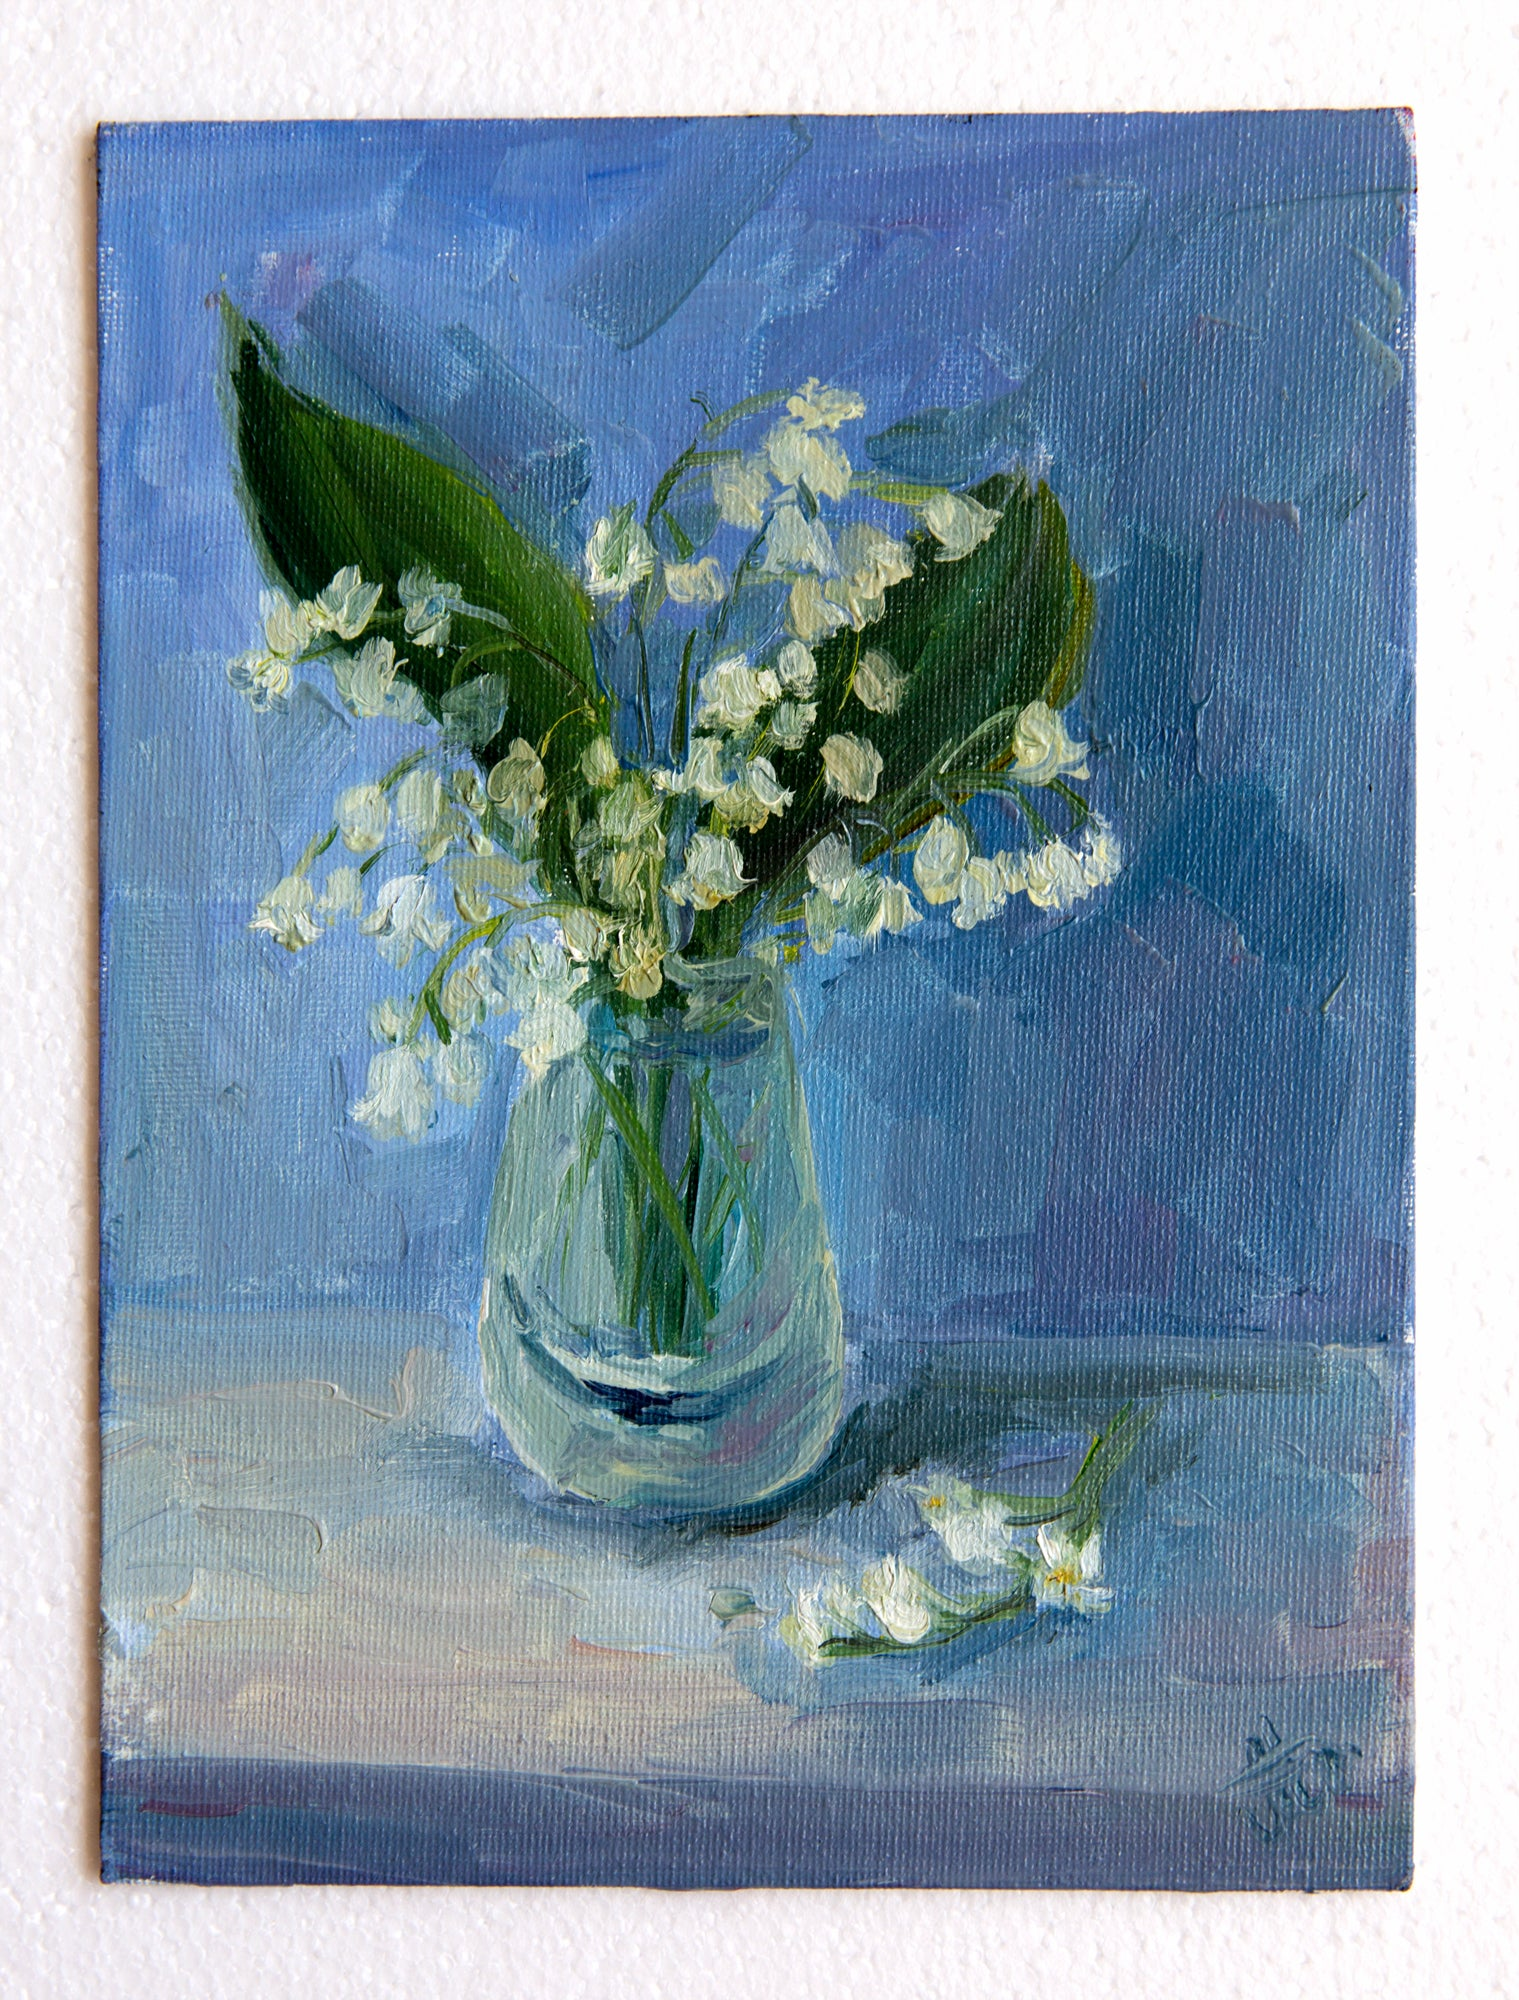 Lilies of the valley by Nataliya Mescheryakova, 18cm*24cm, oil painting